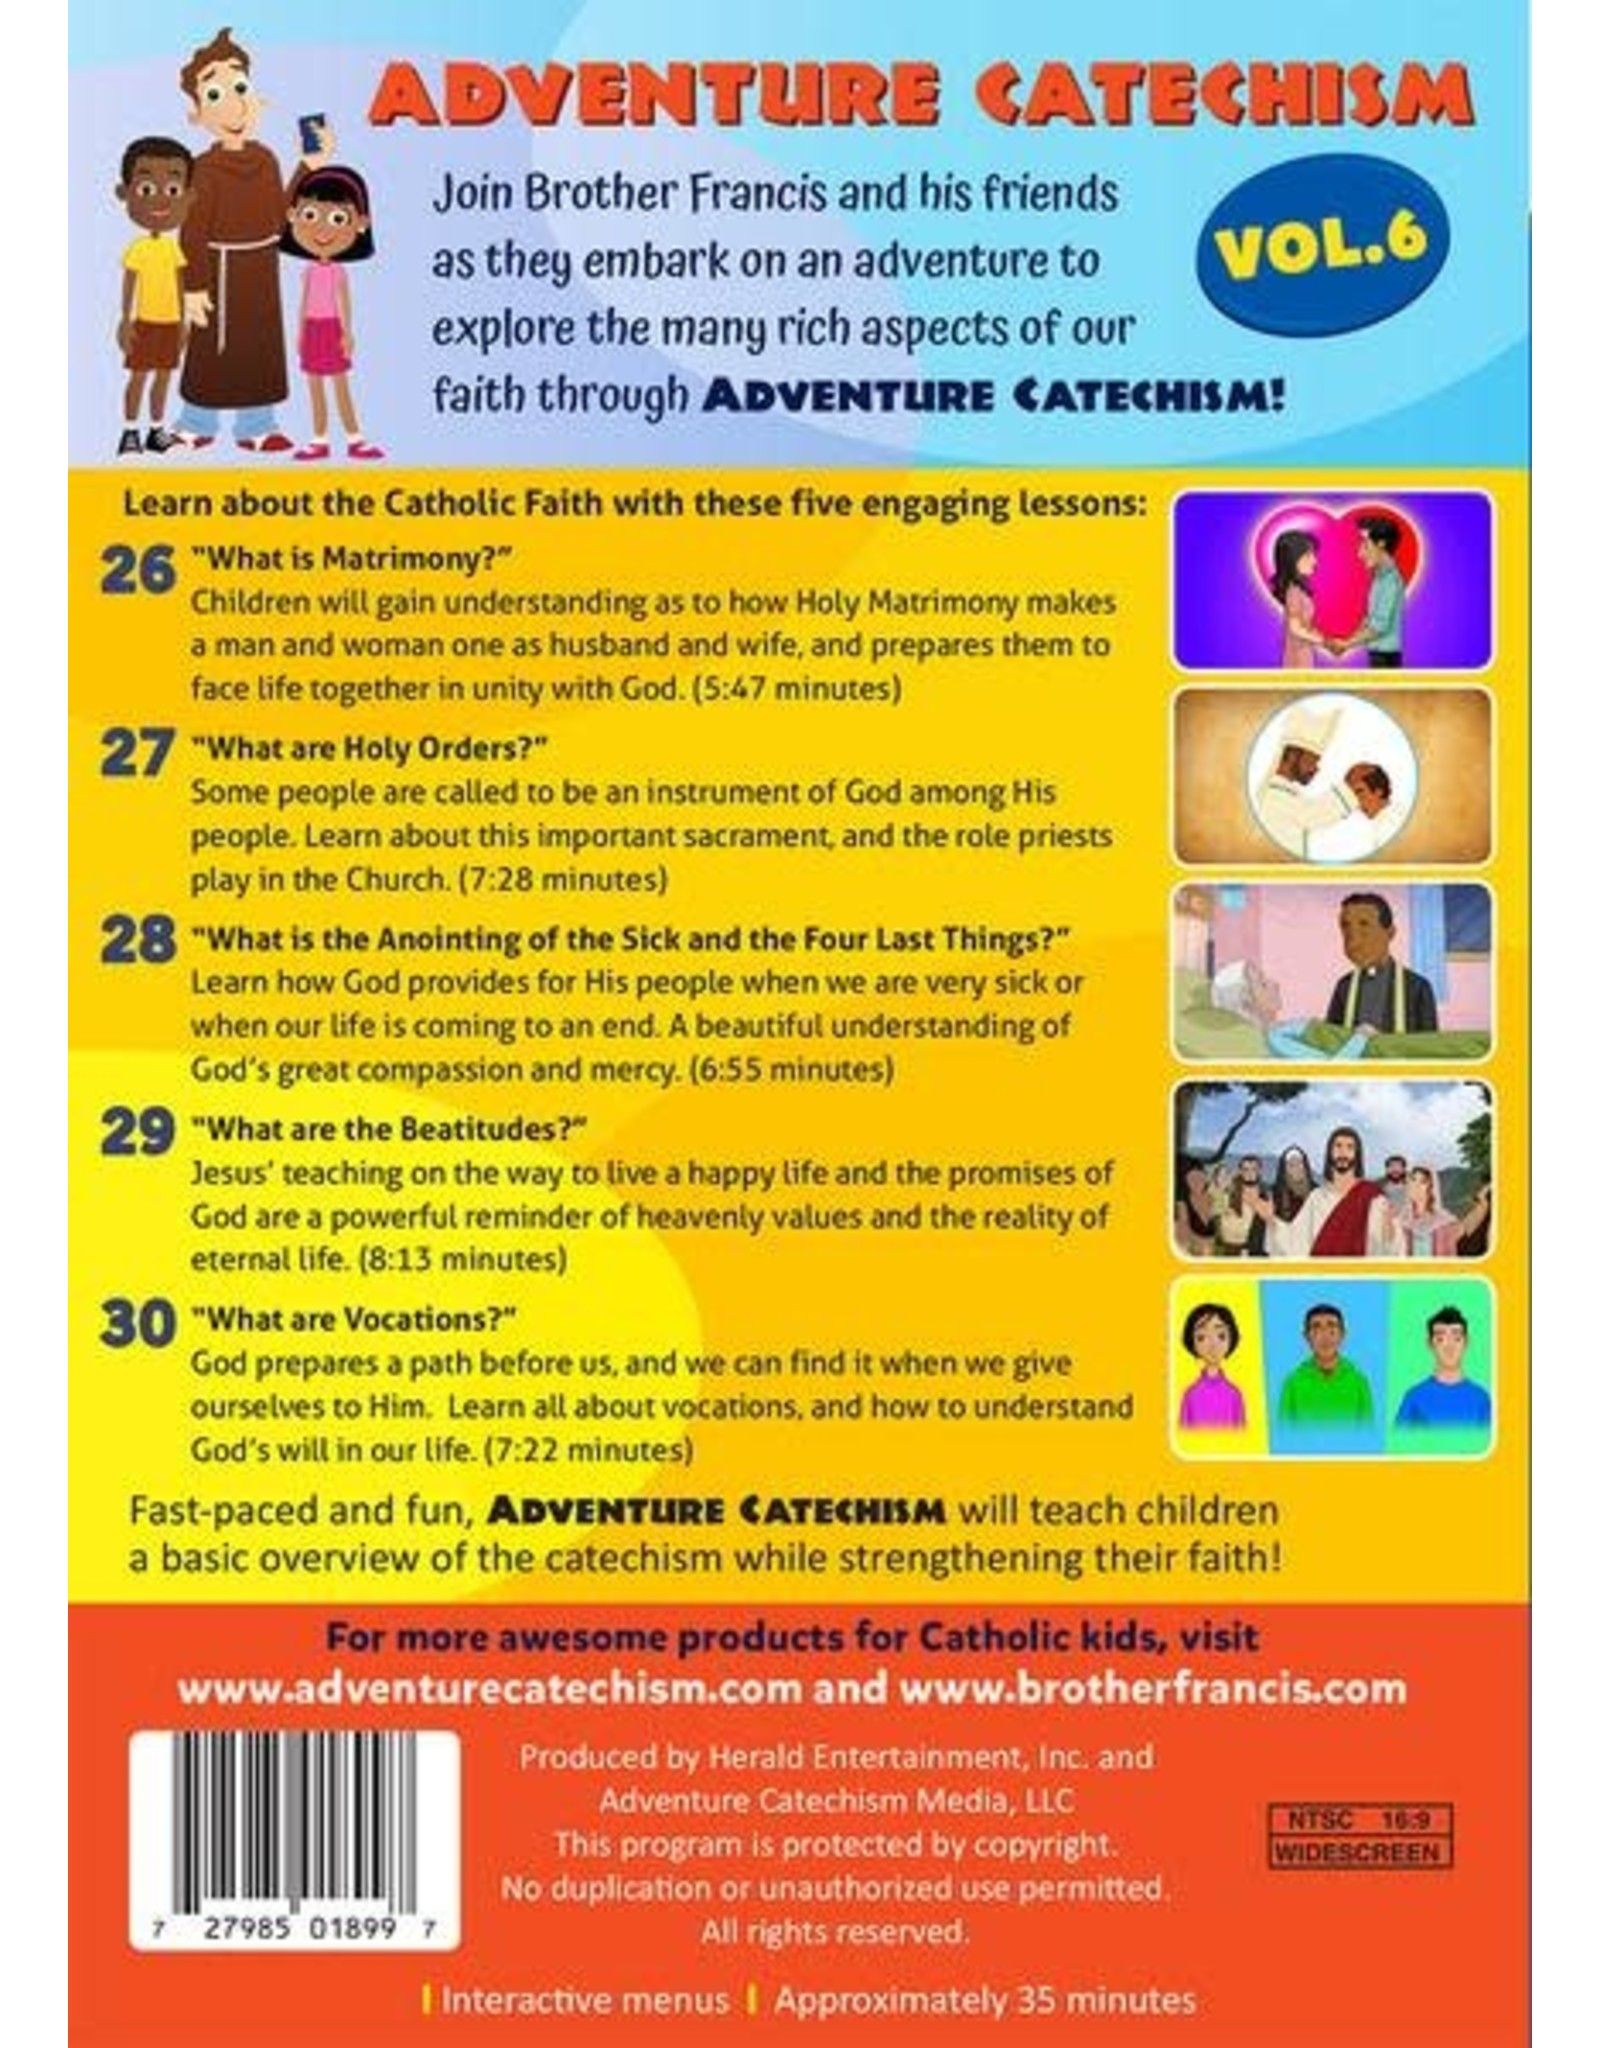 Brother Francis Adventure Catechism Volume 6 - DVD